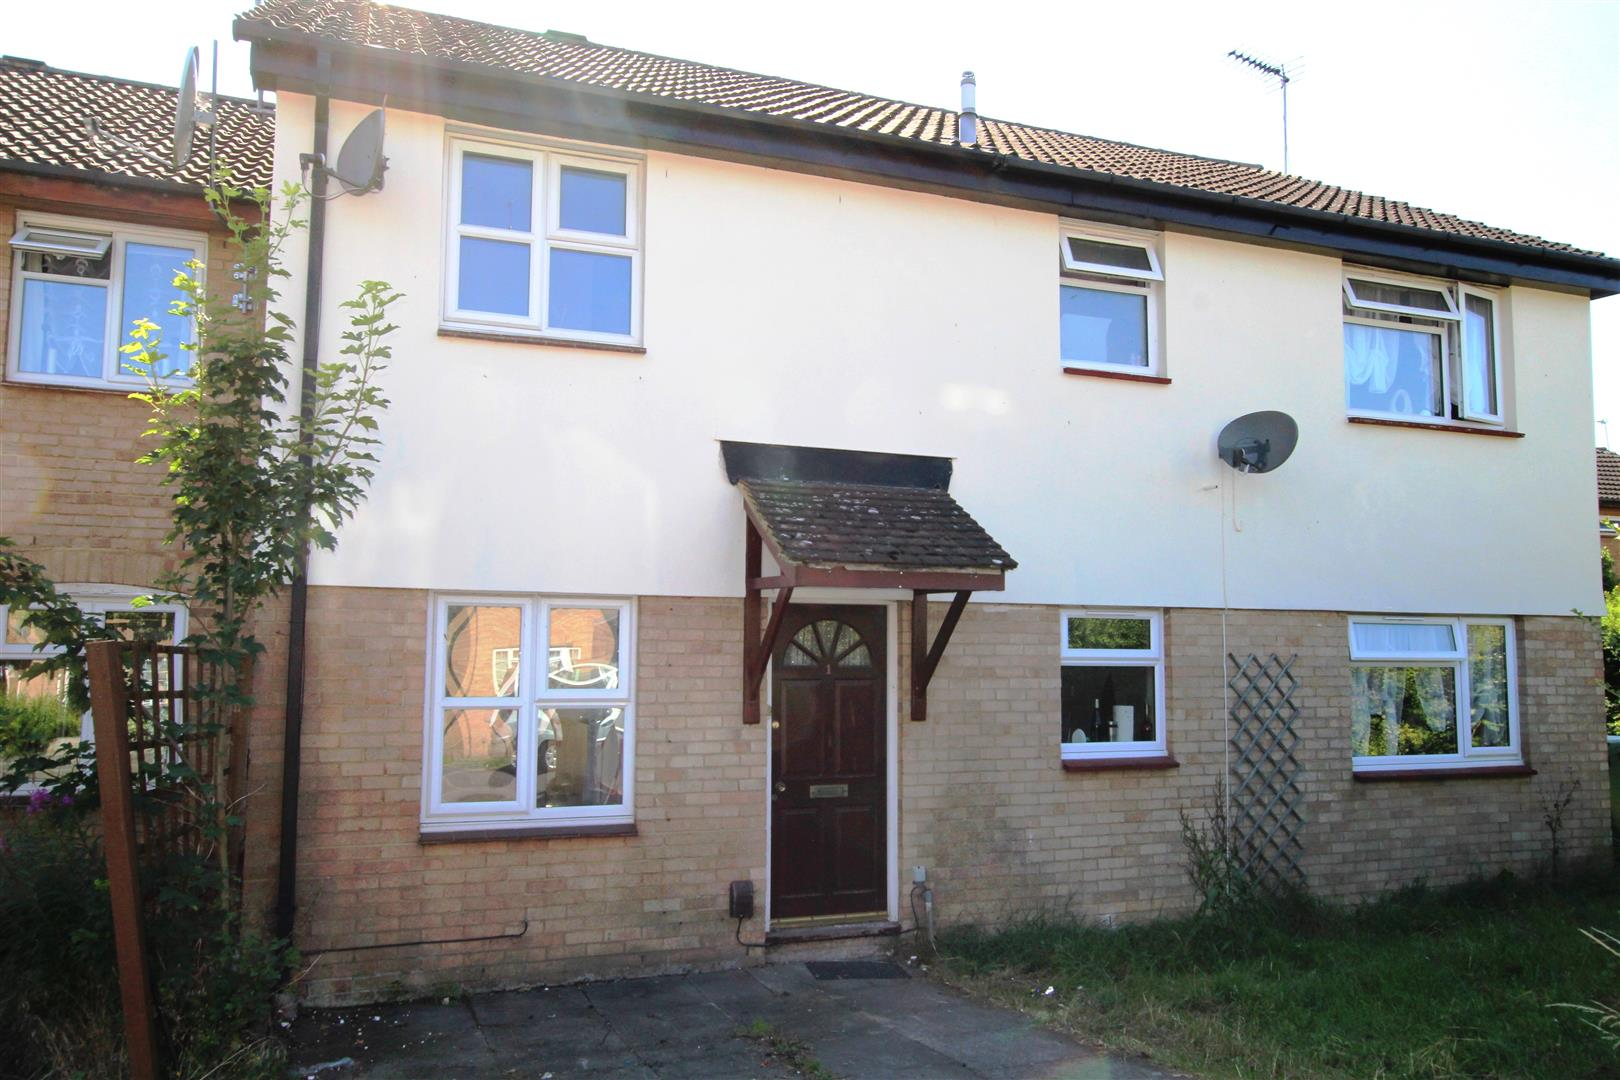 3 Bedrooms Terraced House for sale in Gilpin Close, Houghton Regis